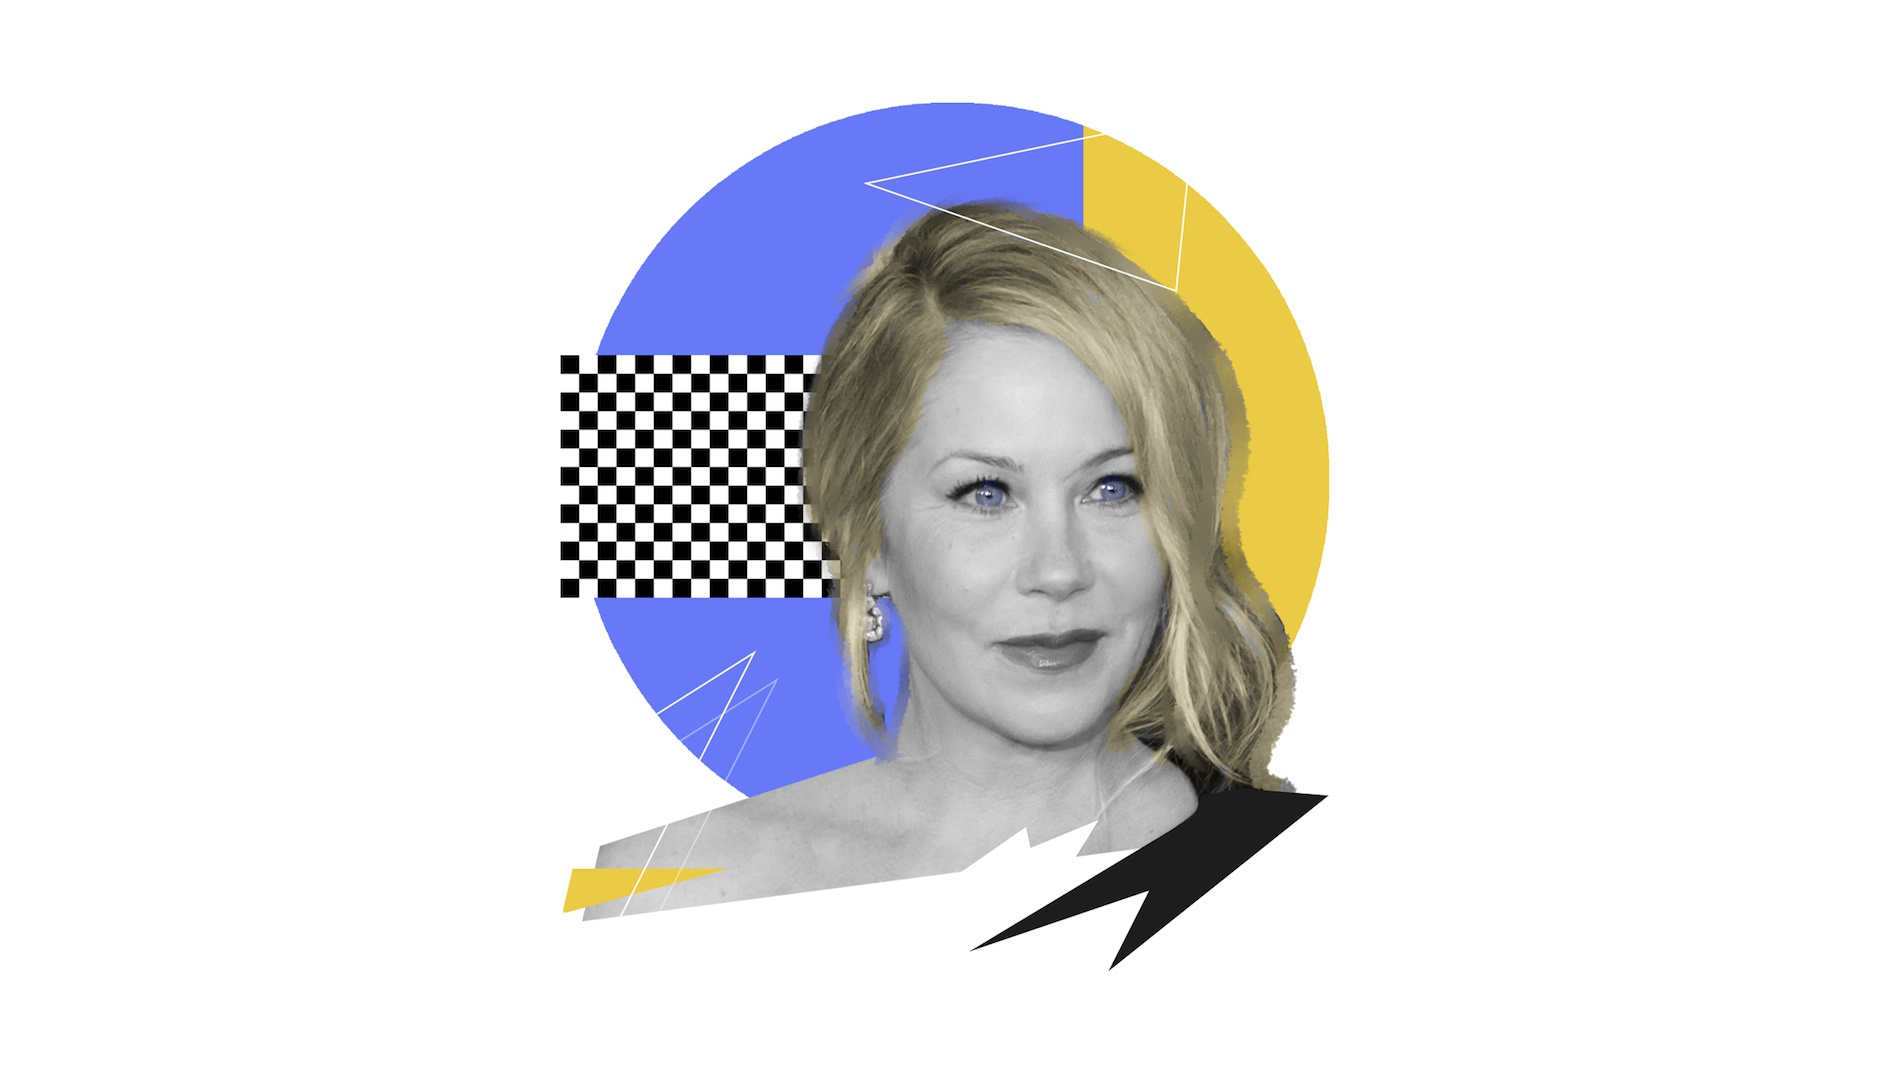 Christina Applegate Reveals Which of Her Movies Makes Her Laugh Hardest